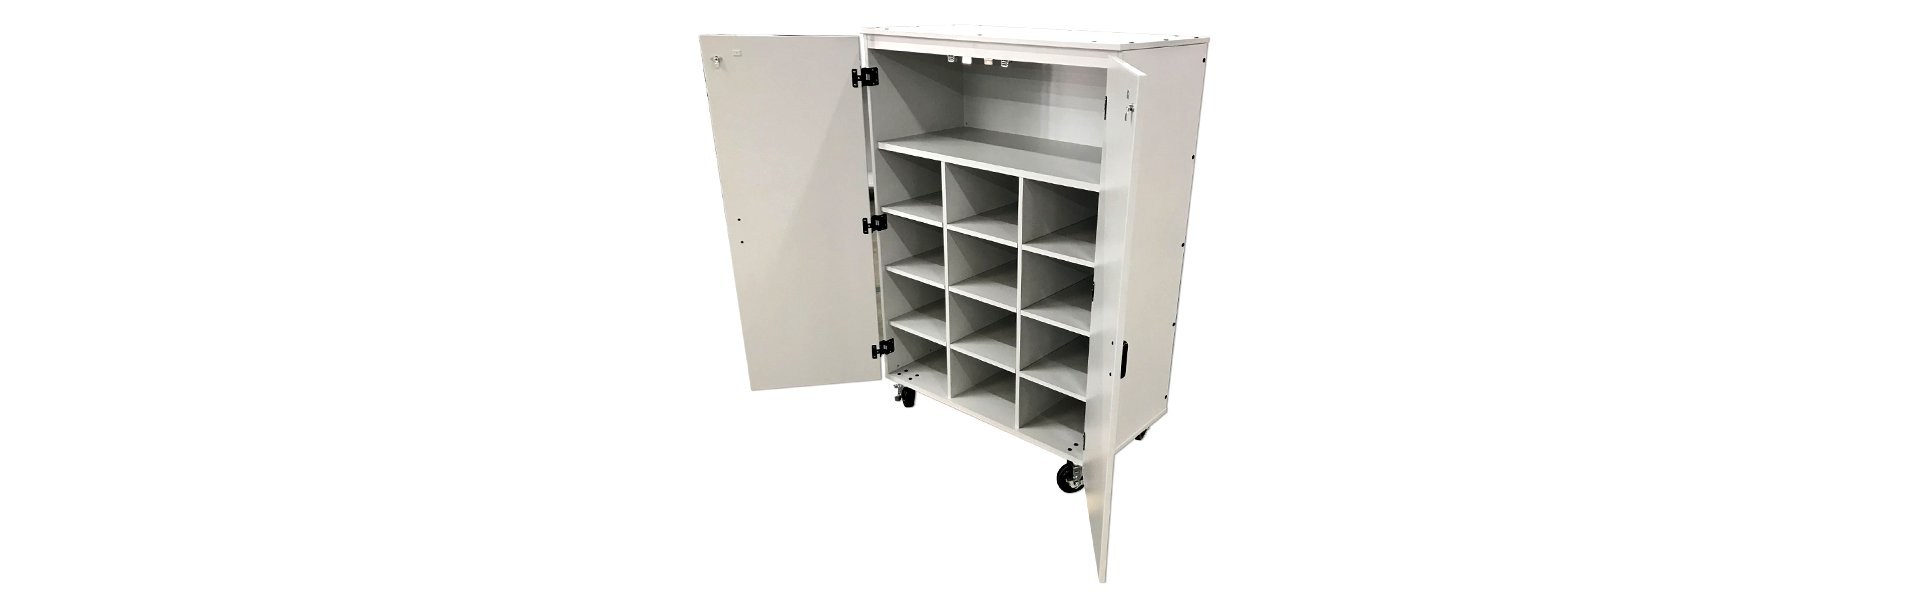 CFC Educational 720 Series Cabinet